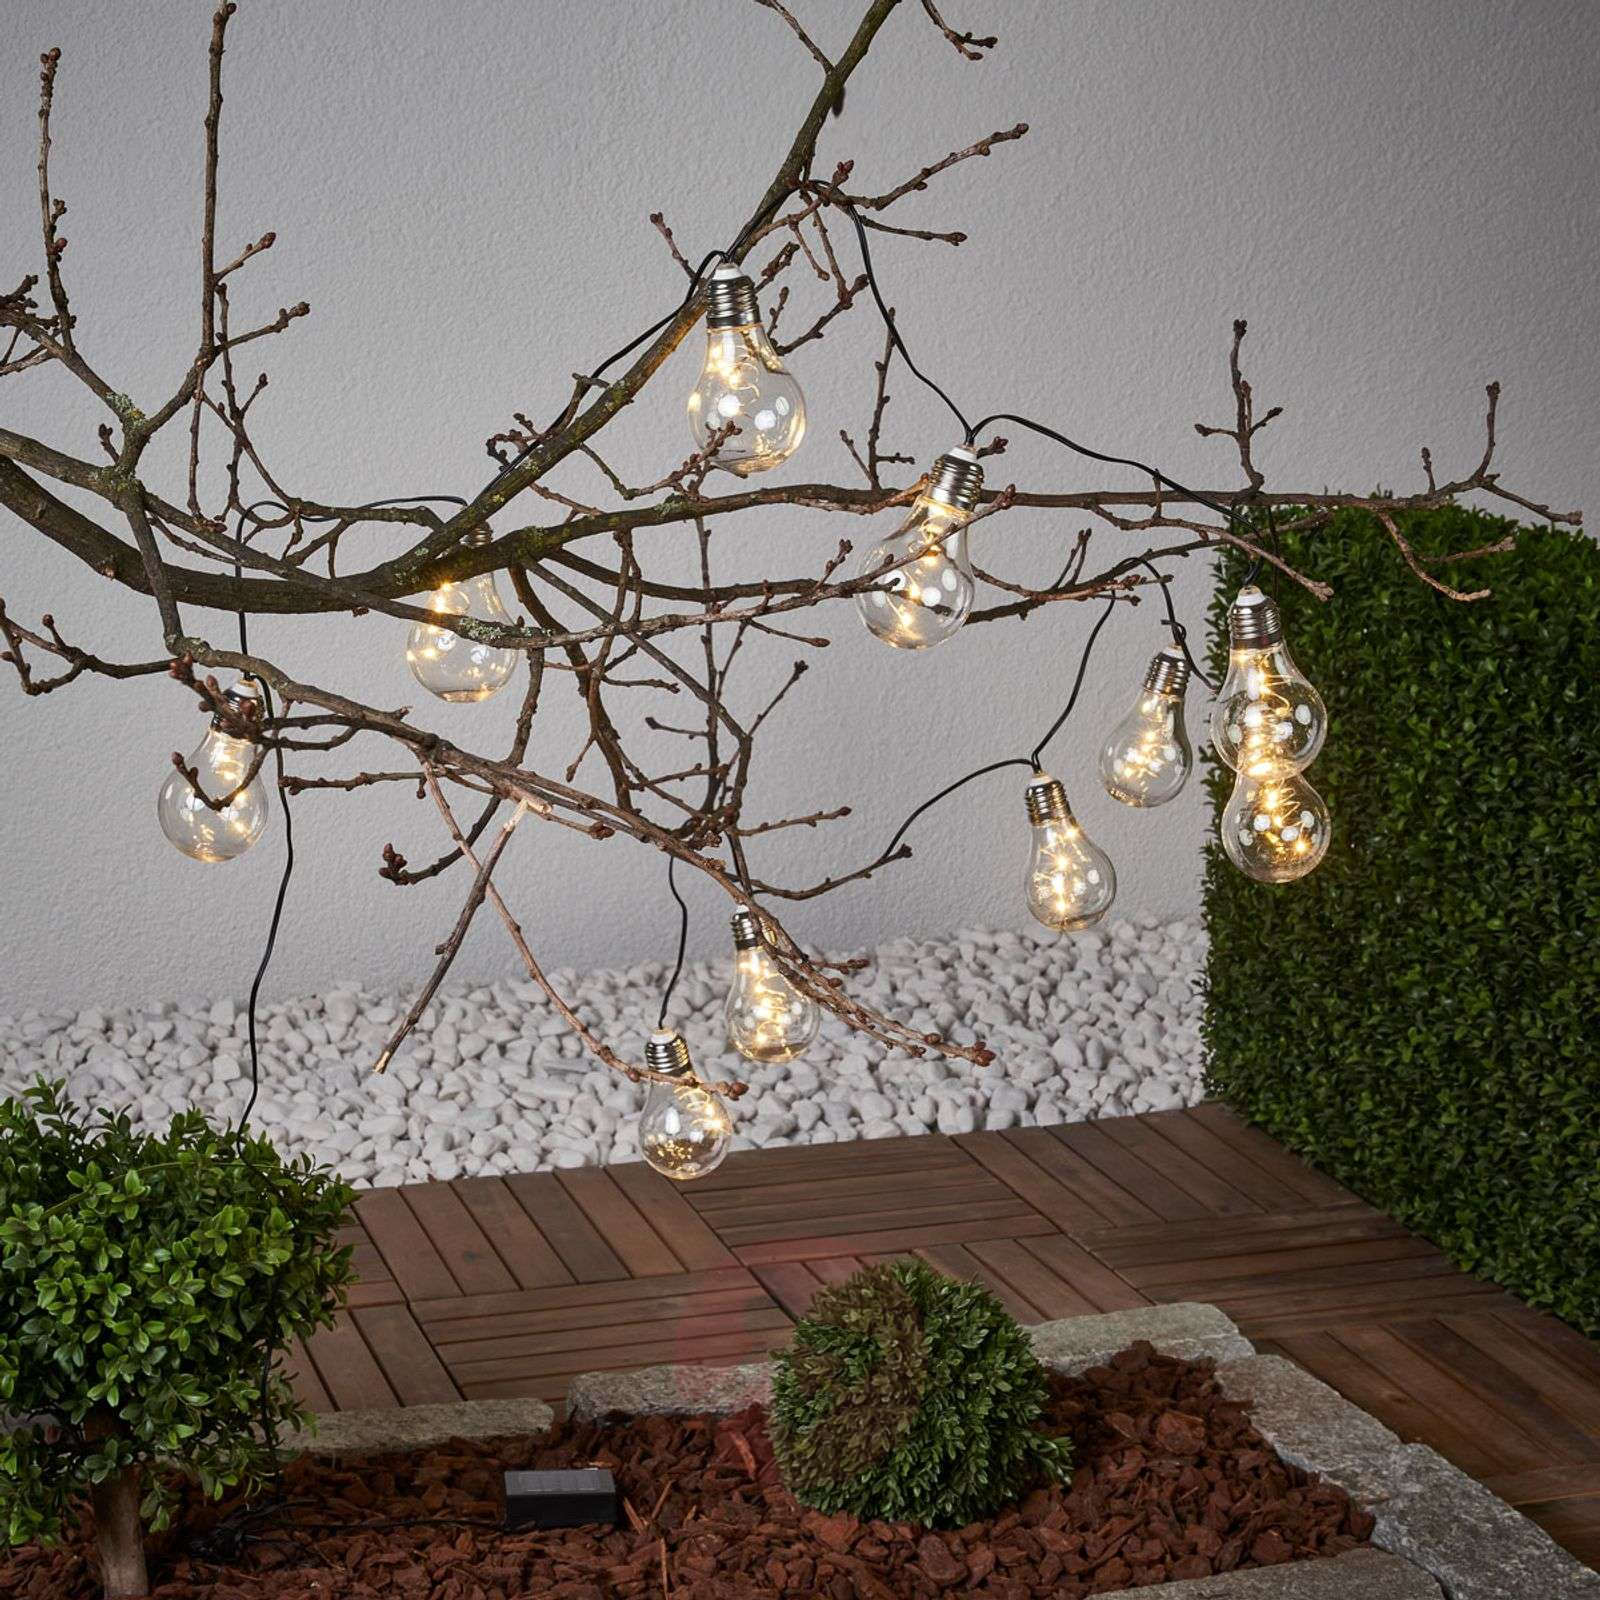 Glow clear string lights with solar power-1523091-01